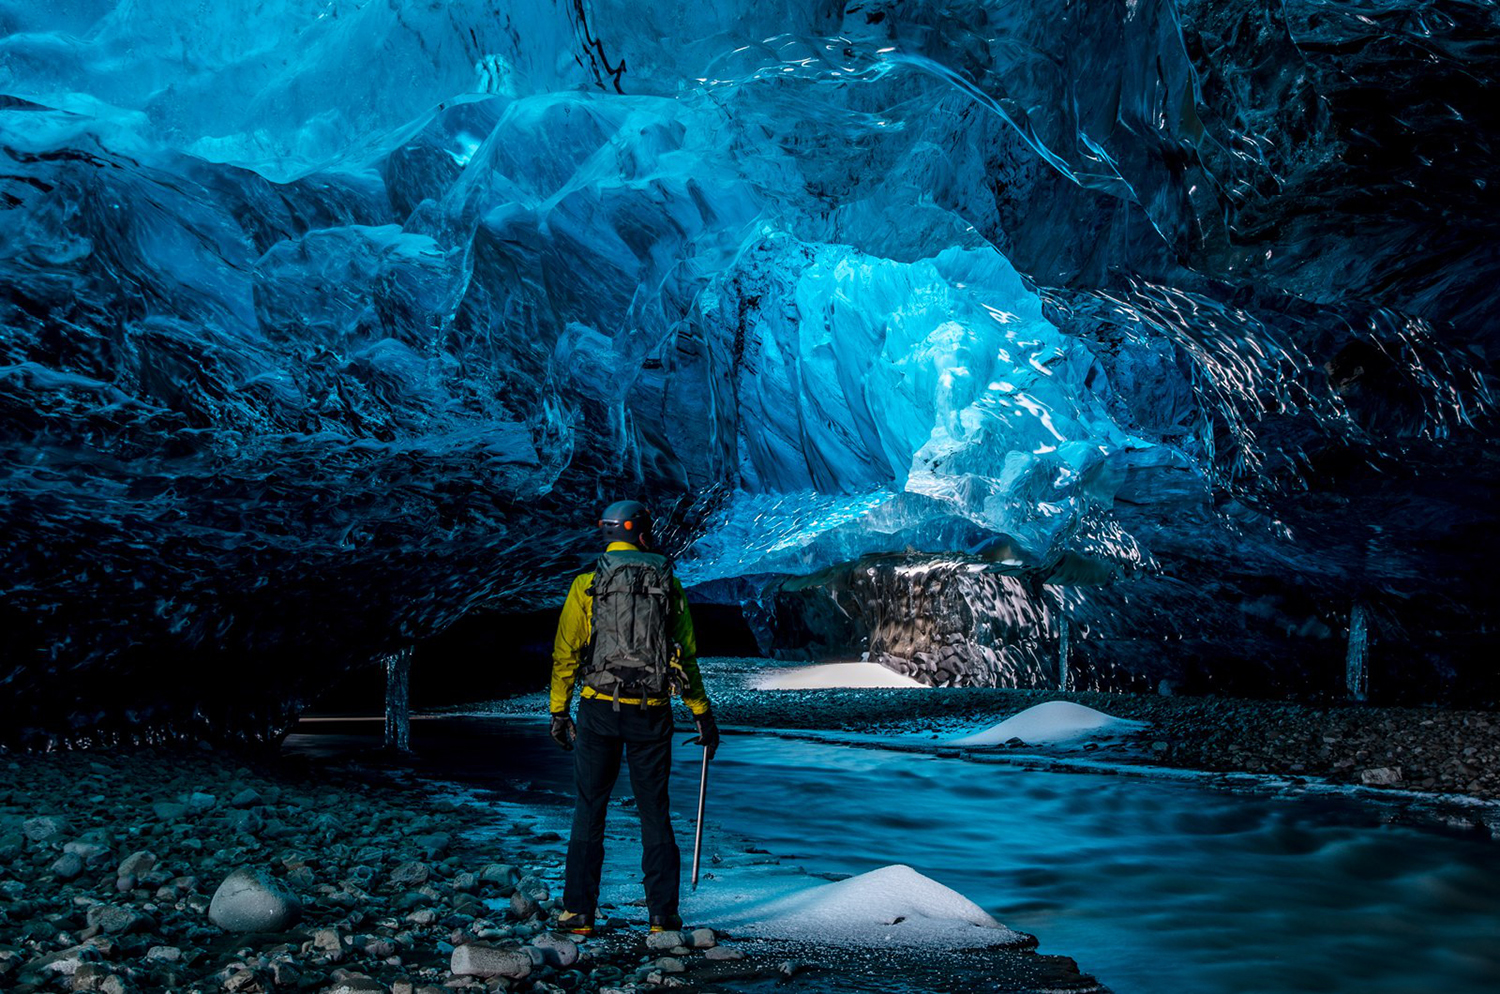 Traveler Trends for 2018 Ice Cave Extreme Trips u8j.a9f.myftpupload.com